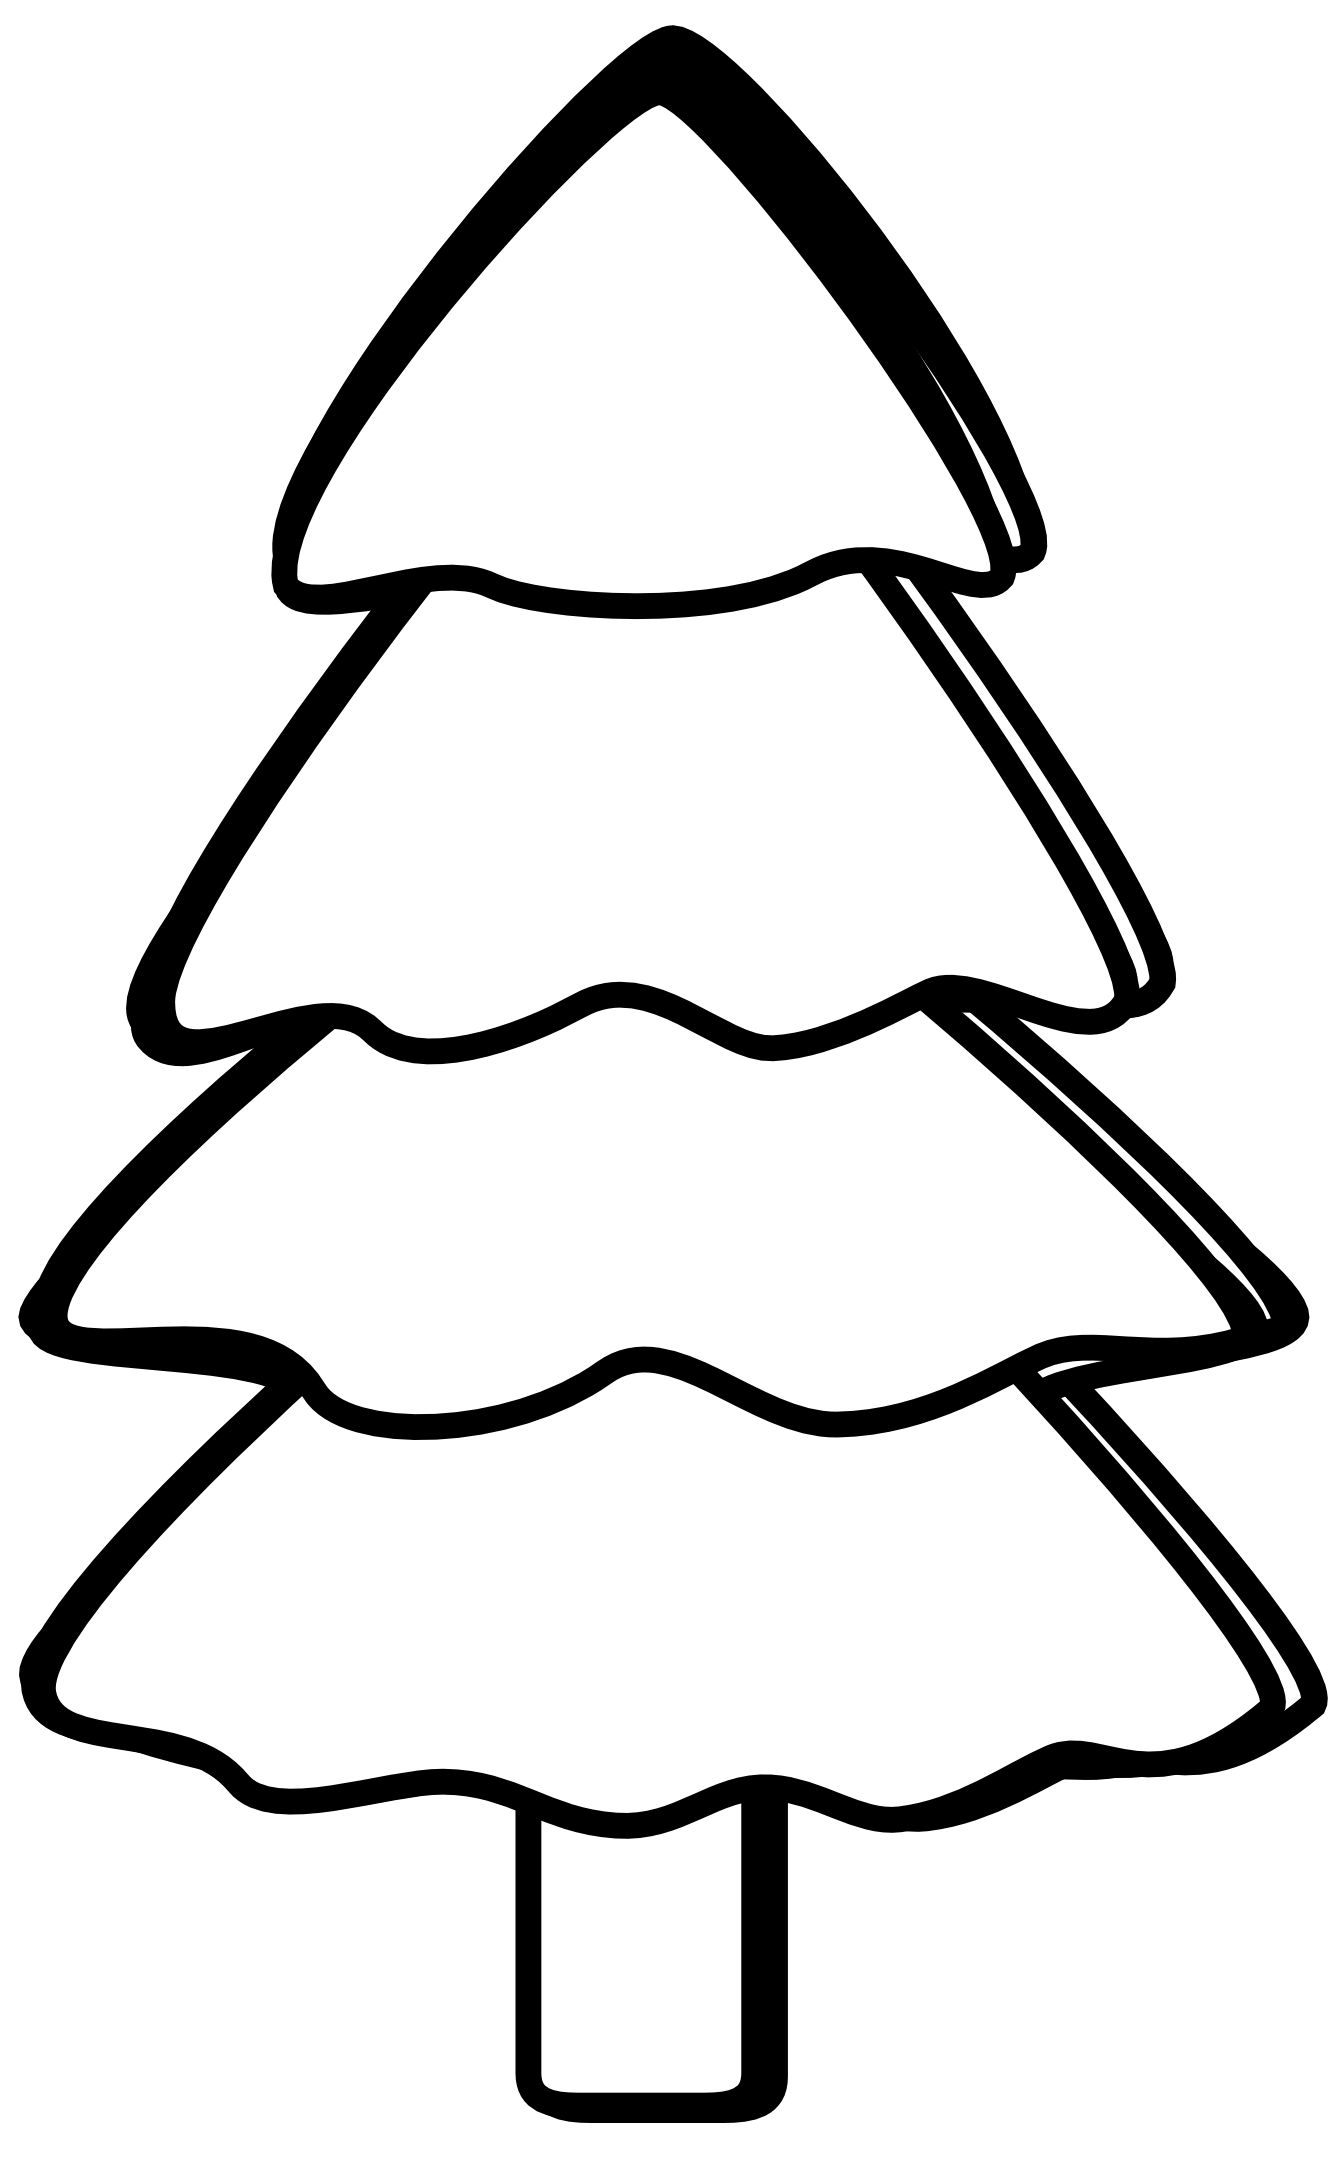 Tall Tree Clip Art For Kids - ClipArt Best